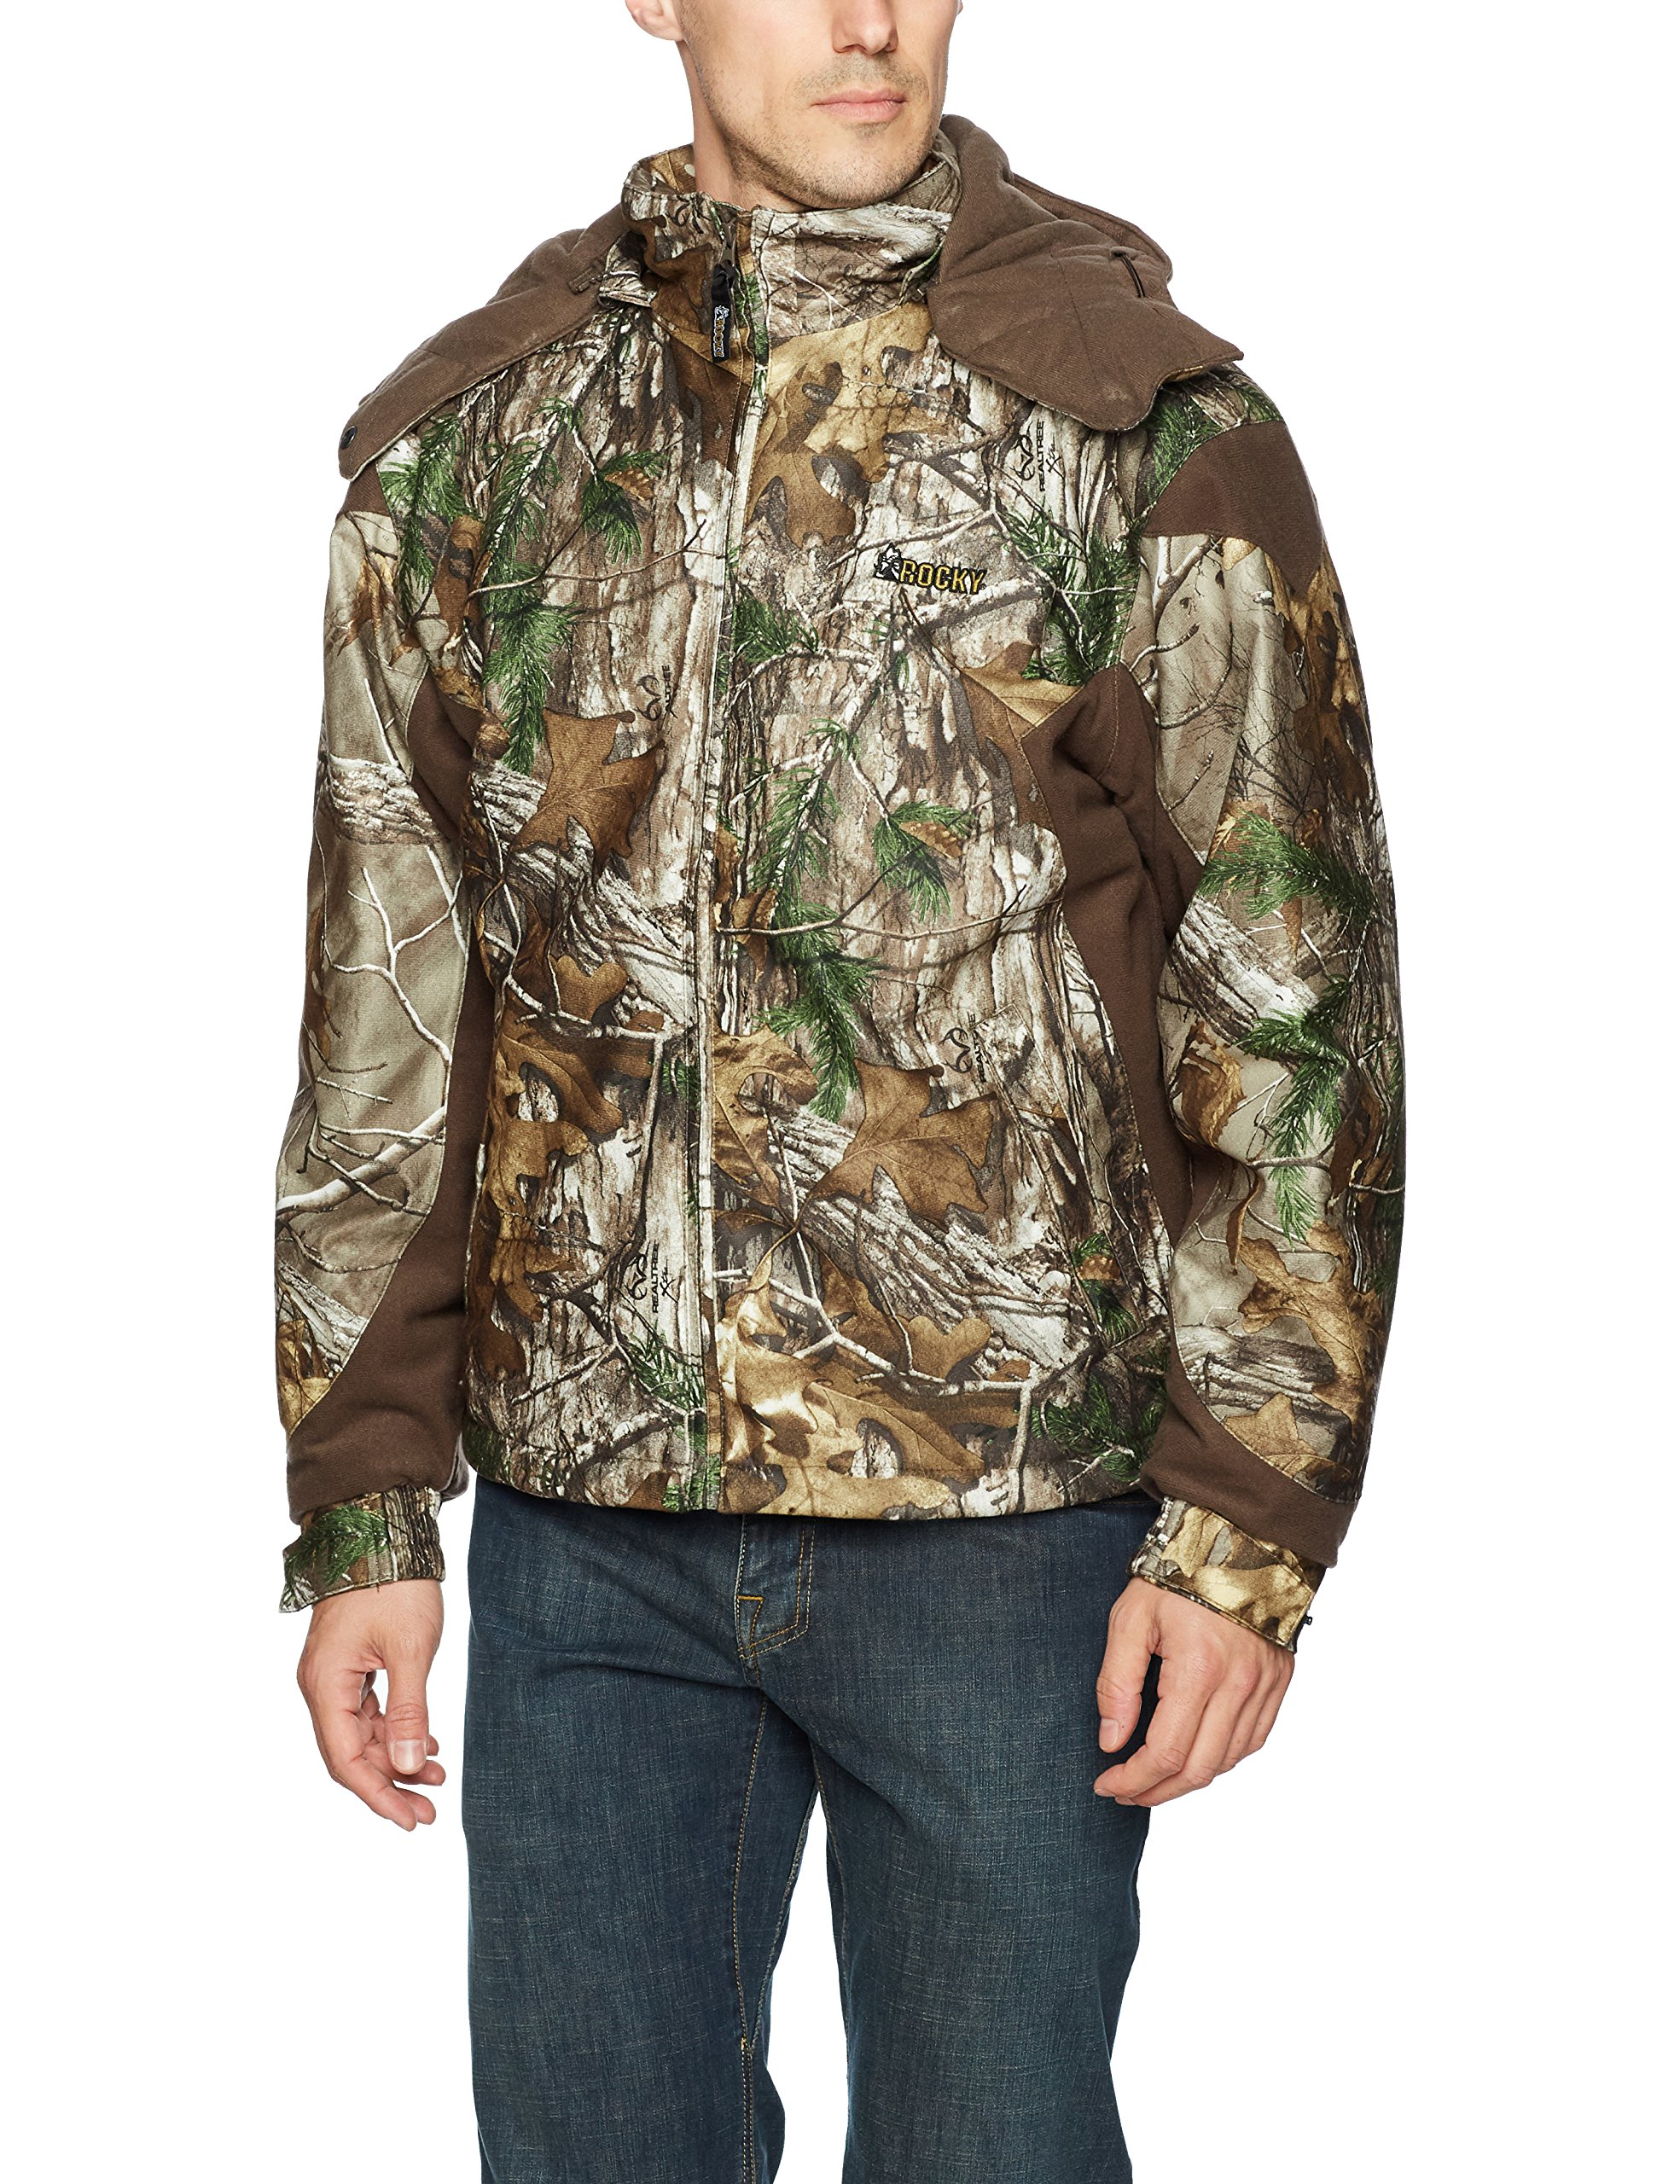 Rocky Men's Prohunter Insulated Parka Jacket, Realtree Extra Camouflage, Large